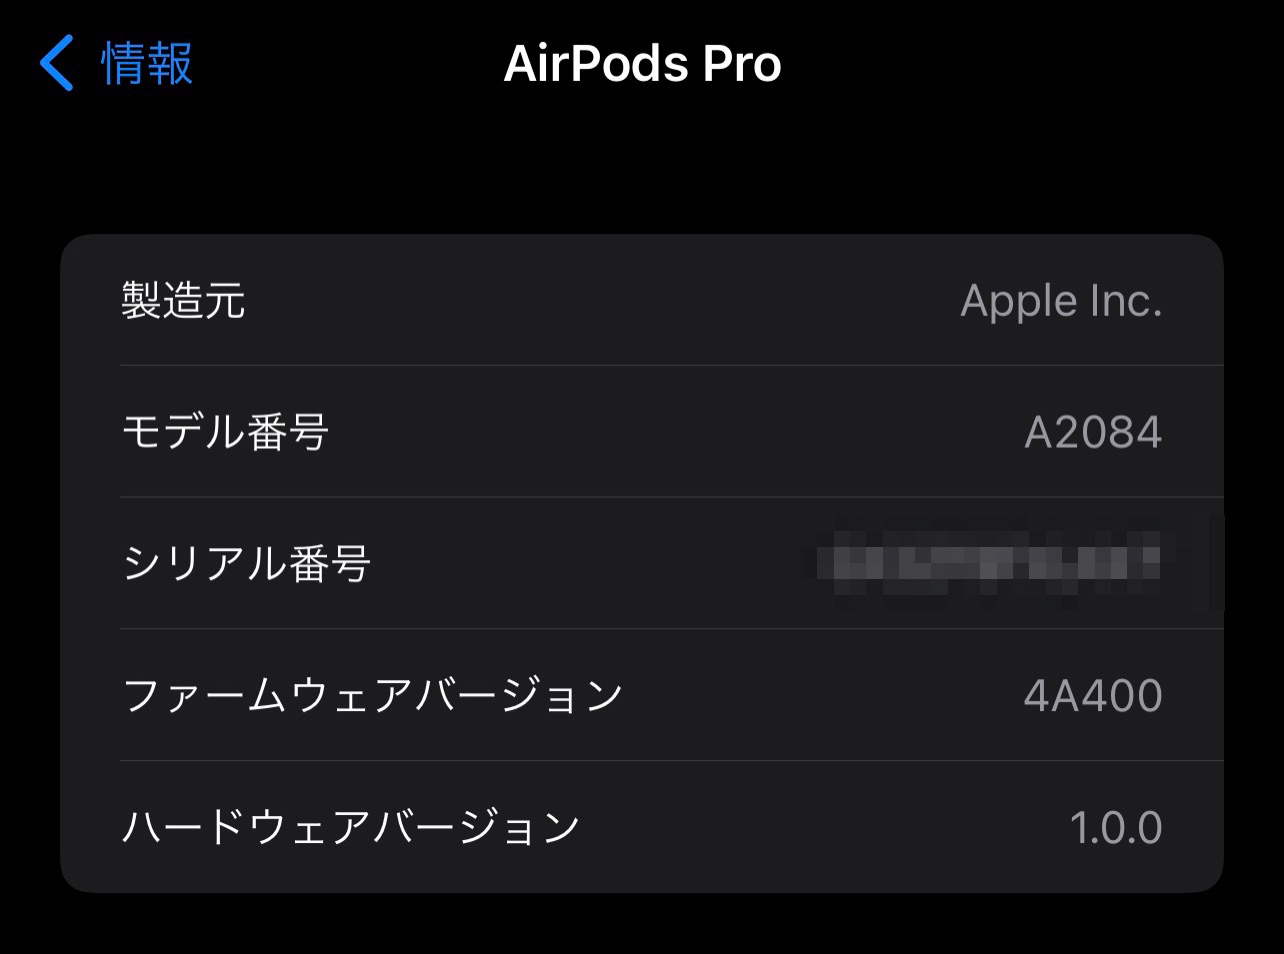 AirPods Pro iOS 15 settings